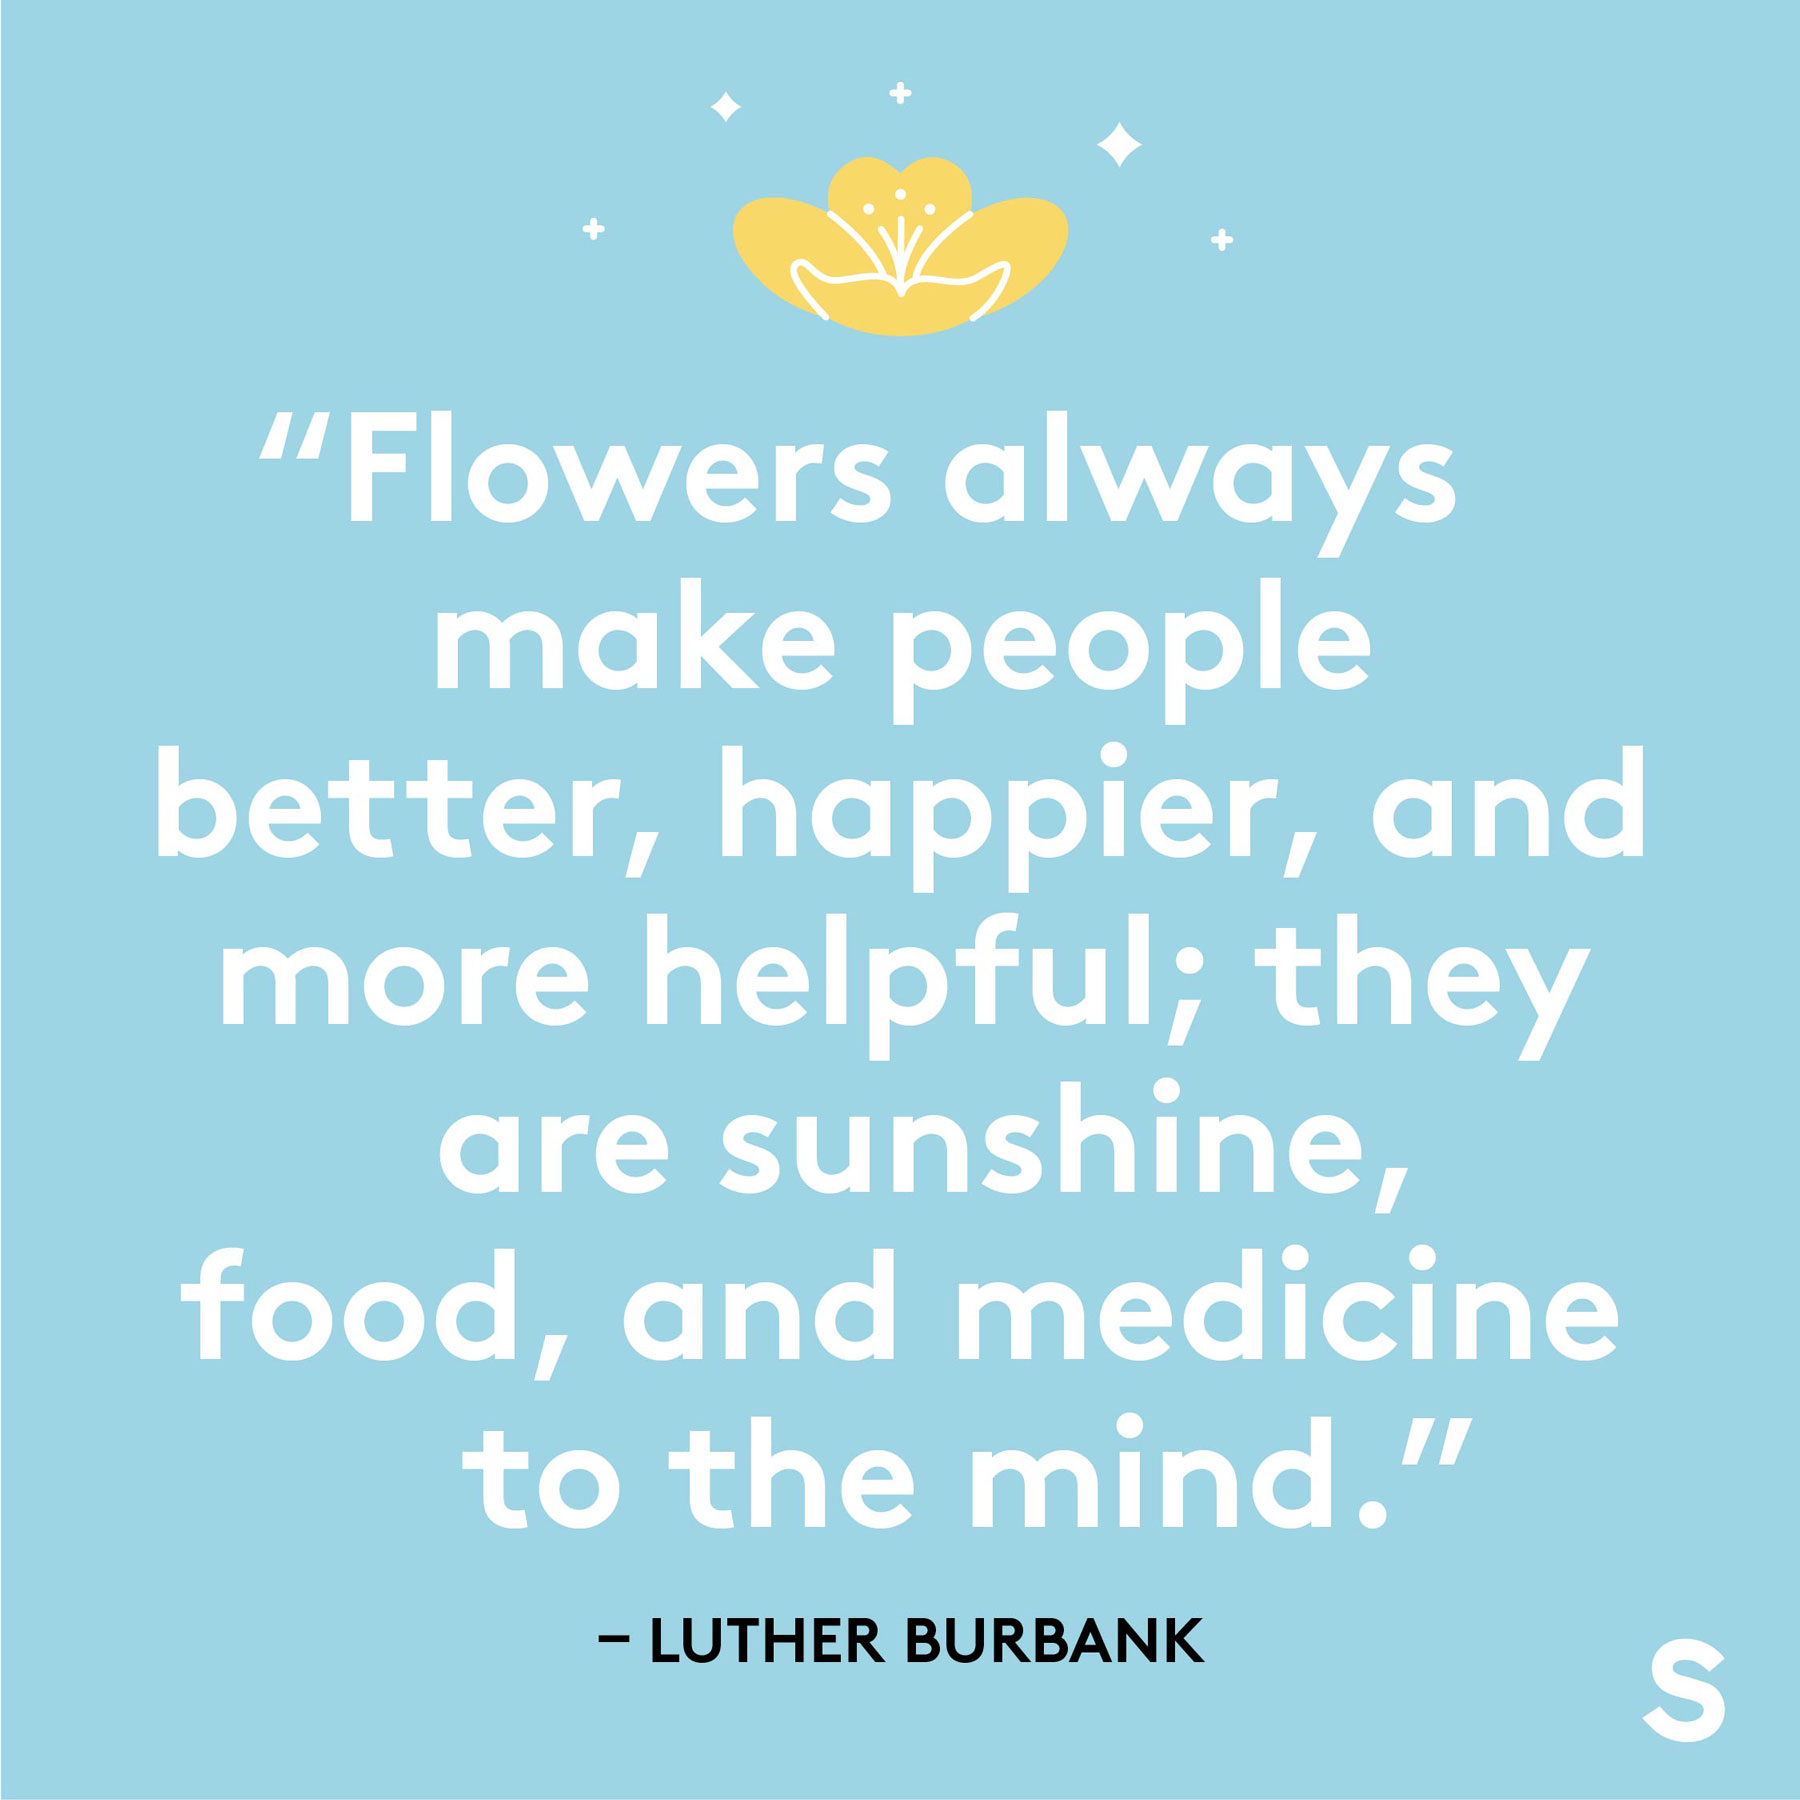 Easter quotes, captions, and messages - Luther Burbank quote